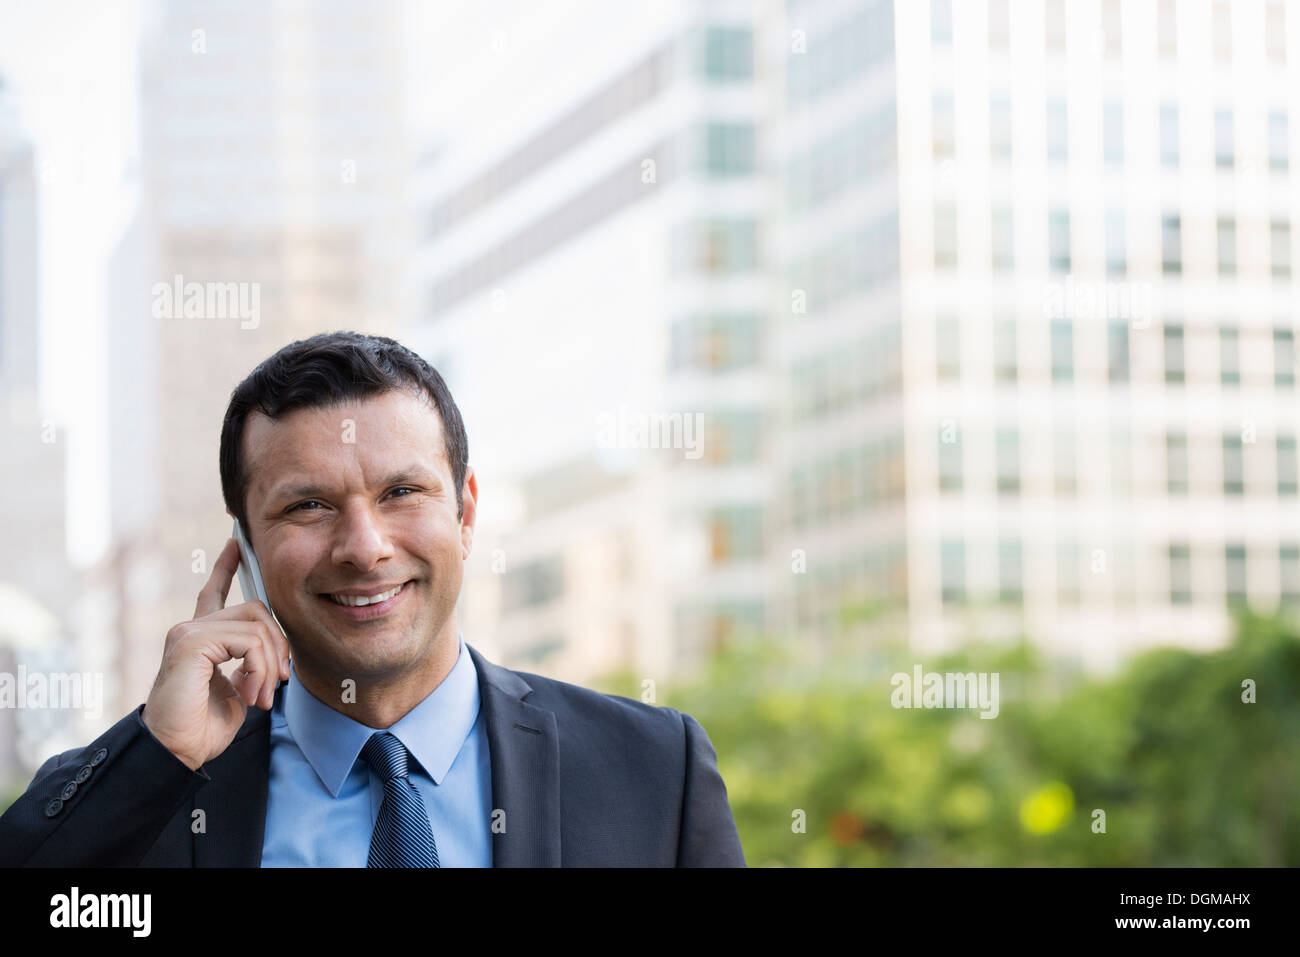 Business people. A latino businessman in business clothes. Using his phone. - Stock Image